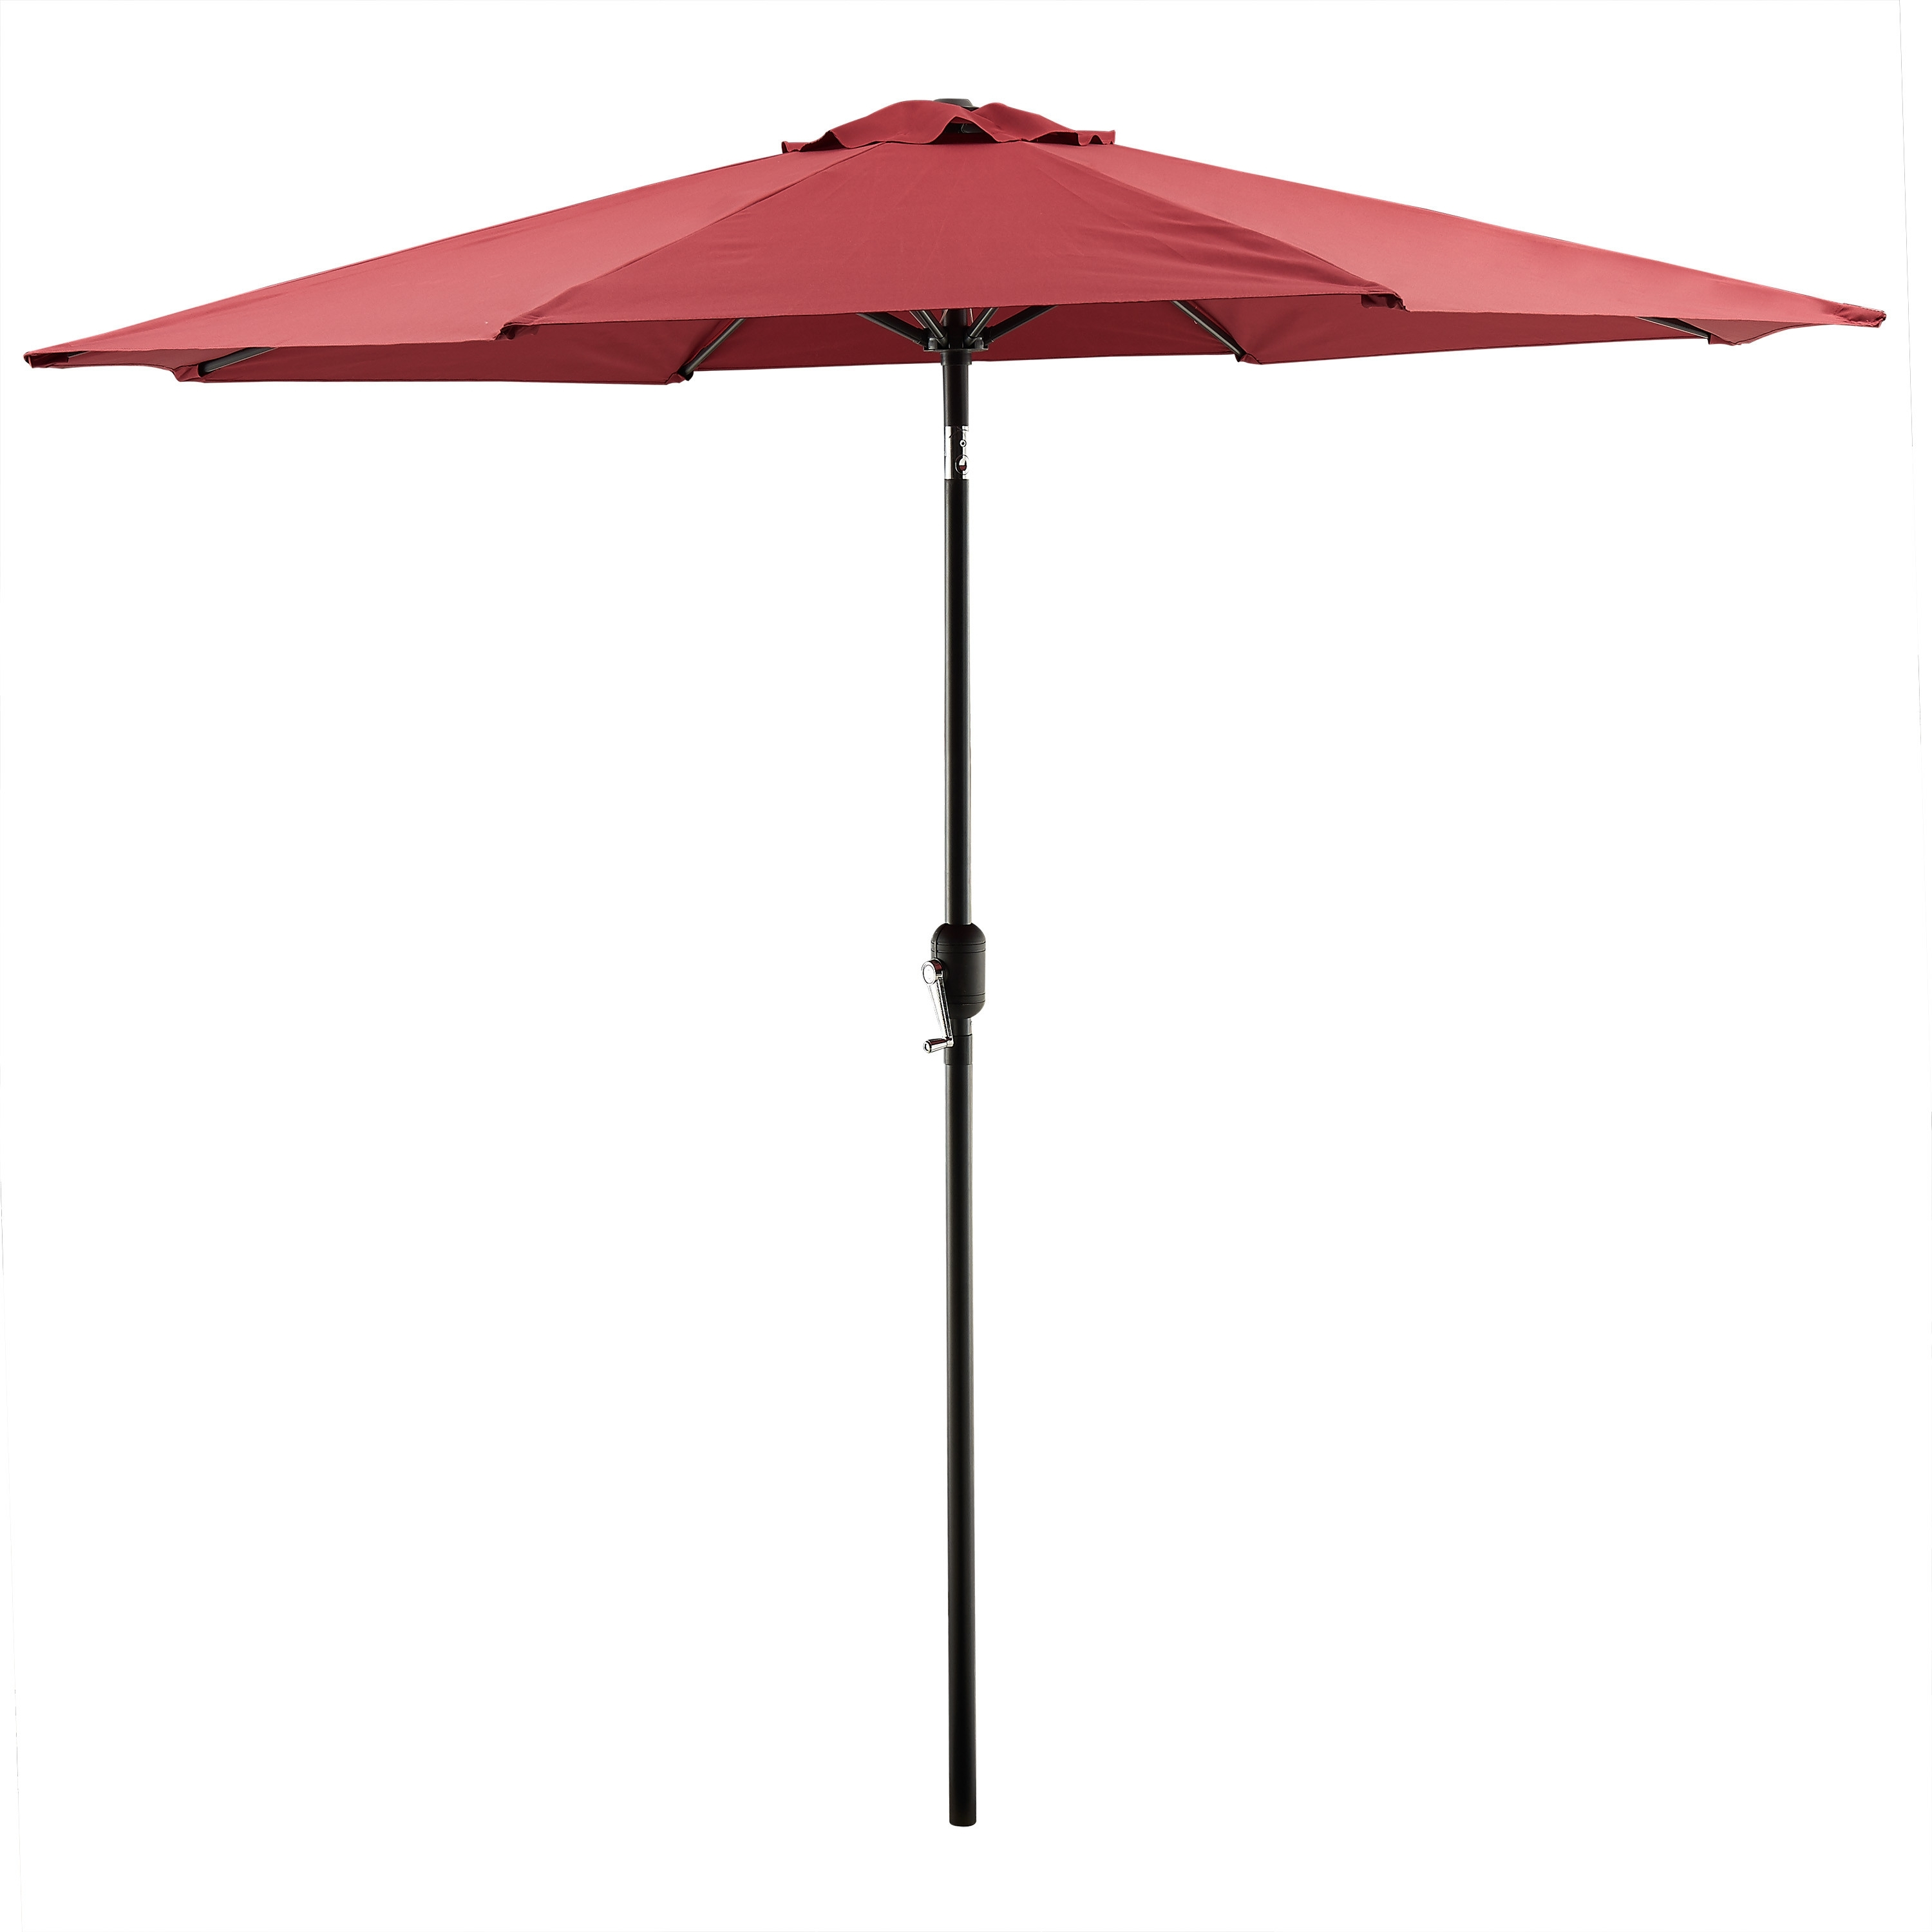 Wayfair Patio Umbrellas With Most Current 9 Market Umbrelladhi.dhi 9' Market Umbrella Reviews Wayfair (View 17 of 20)